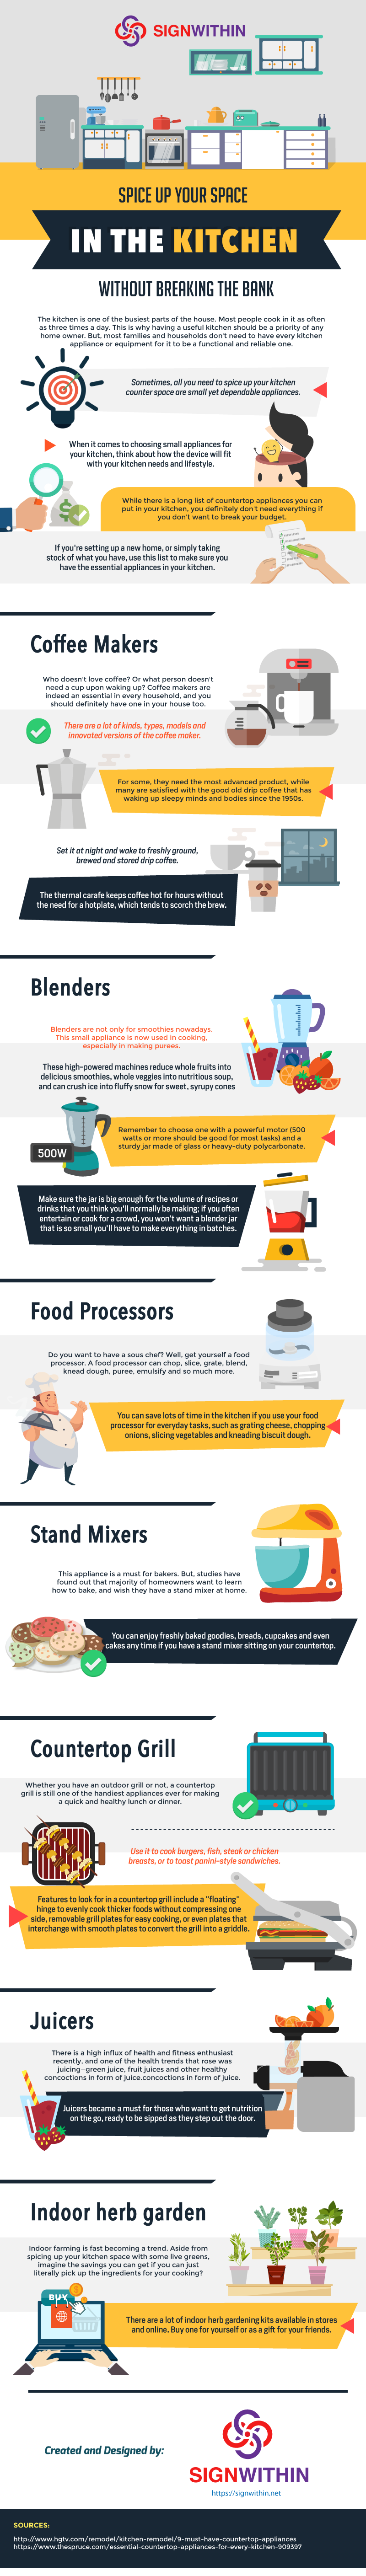 Spice Up Your Space In The Kitchen Without Breaking The Bank Infographic